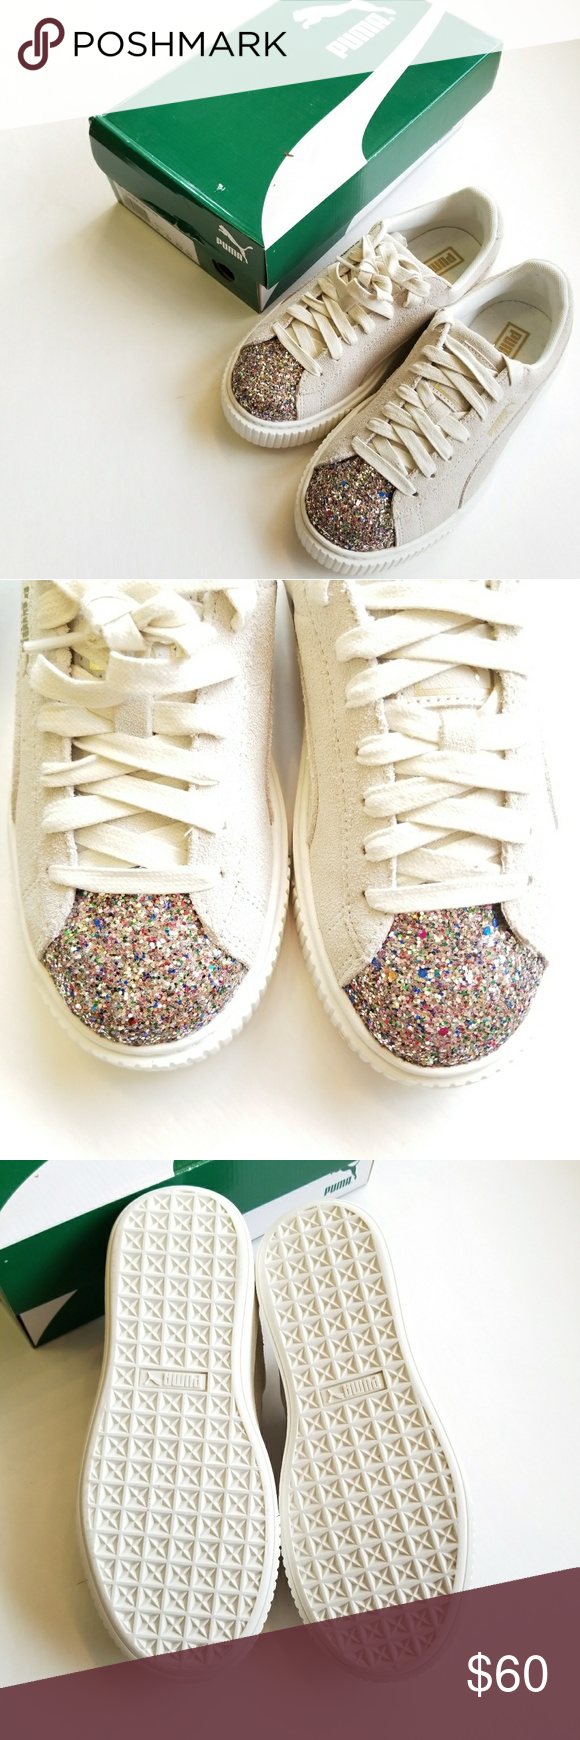 40bae3bf60d2 Puma Suede Platform crushed Gem Add some sparkle to your step with these  New in the Box marshmallow Suede Platform sneakers from Puma.